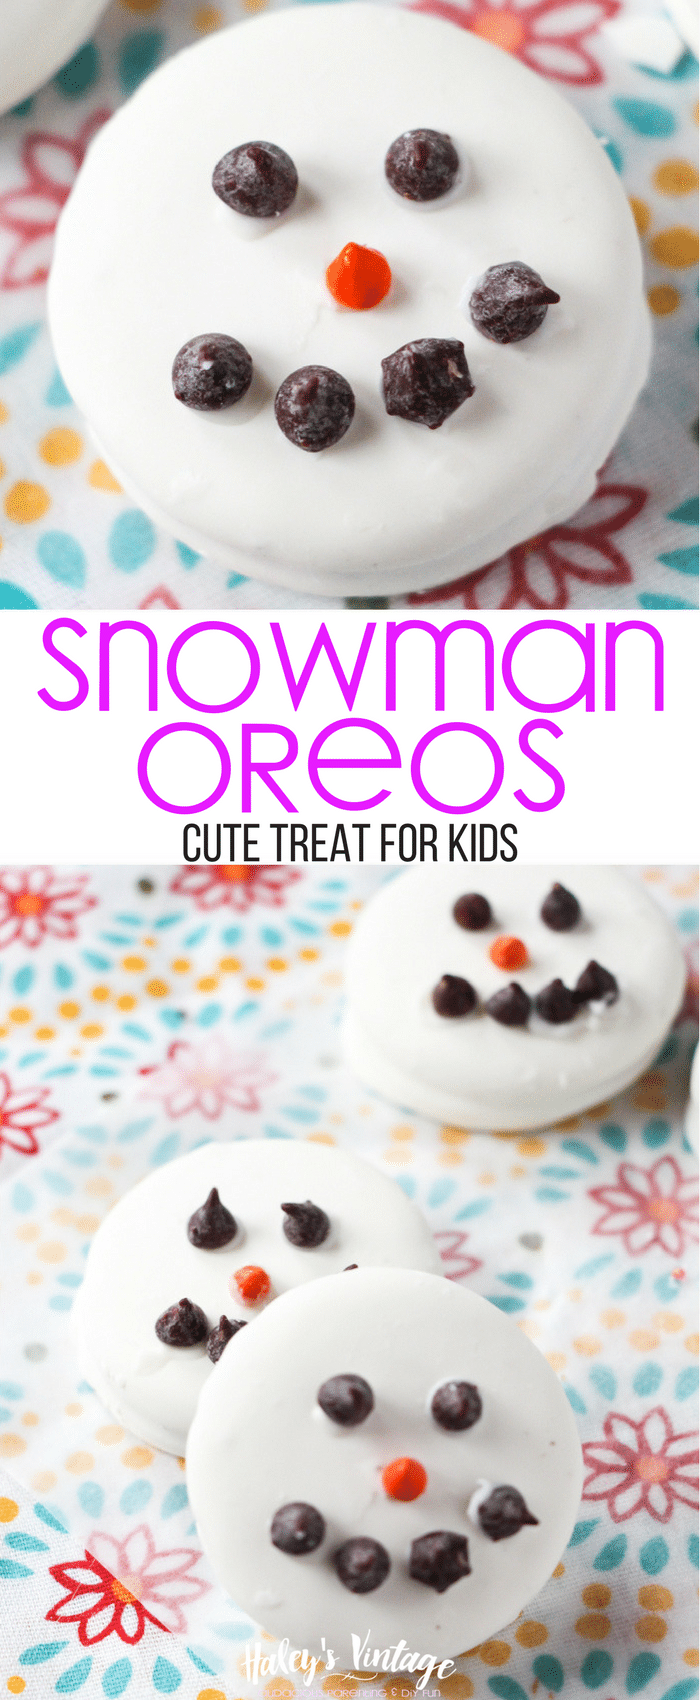 Making Snowman OREOs is a great way to get kids in the kitchen. And don't worry, Snowman OREOs are super quick to make and fun to share!